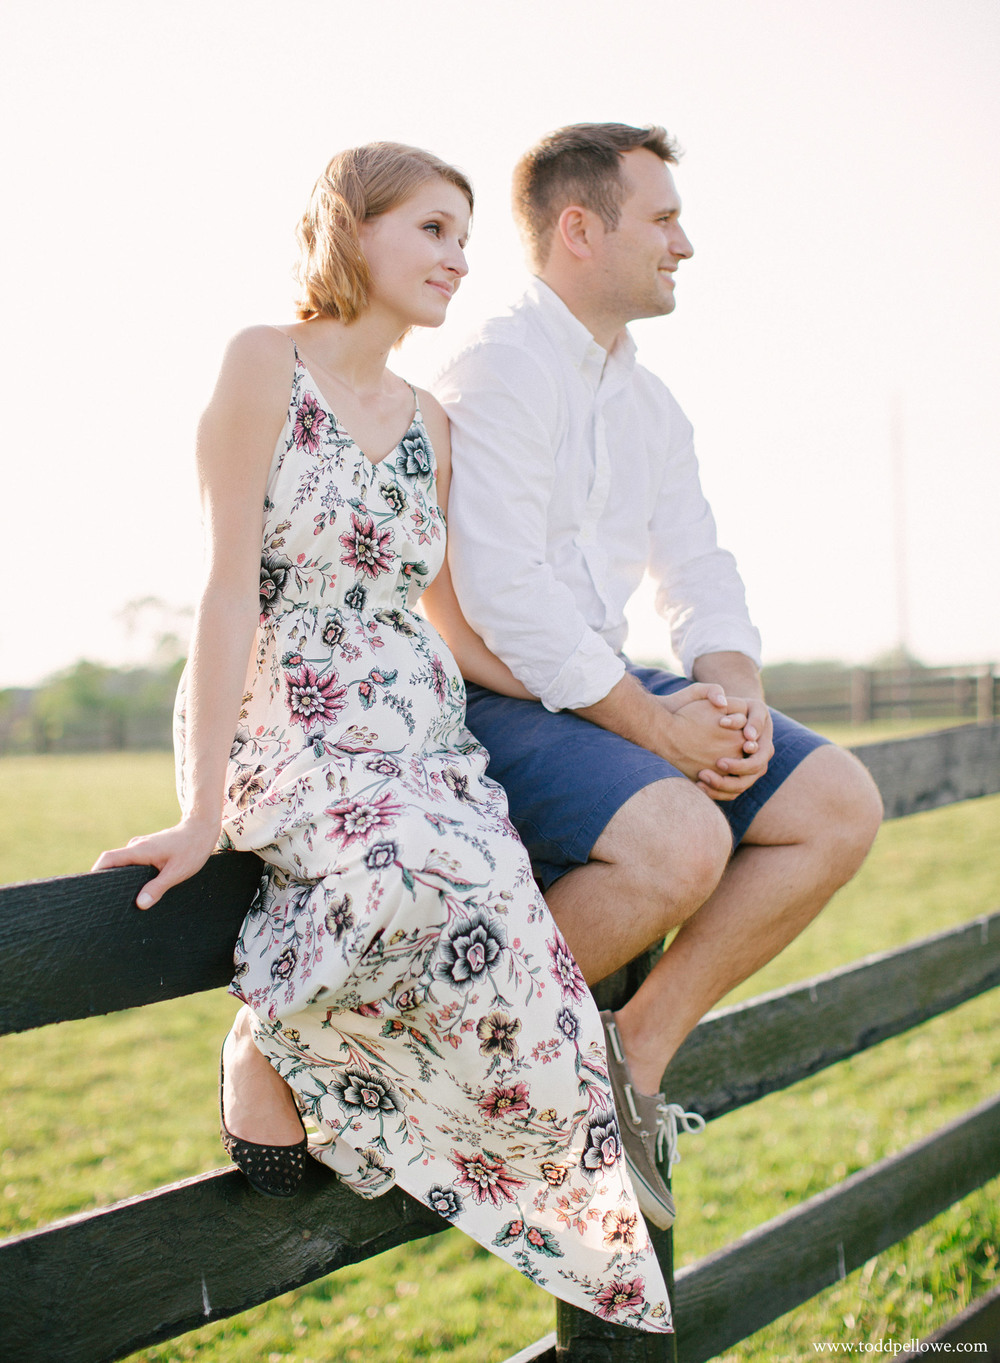 09-horse-farm-engagement-photography-128.jpg